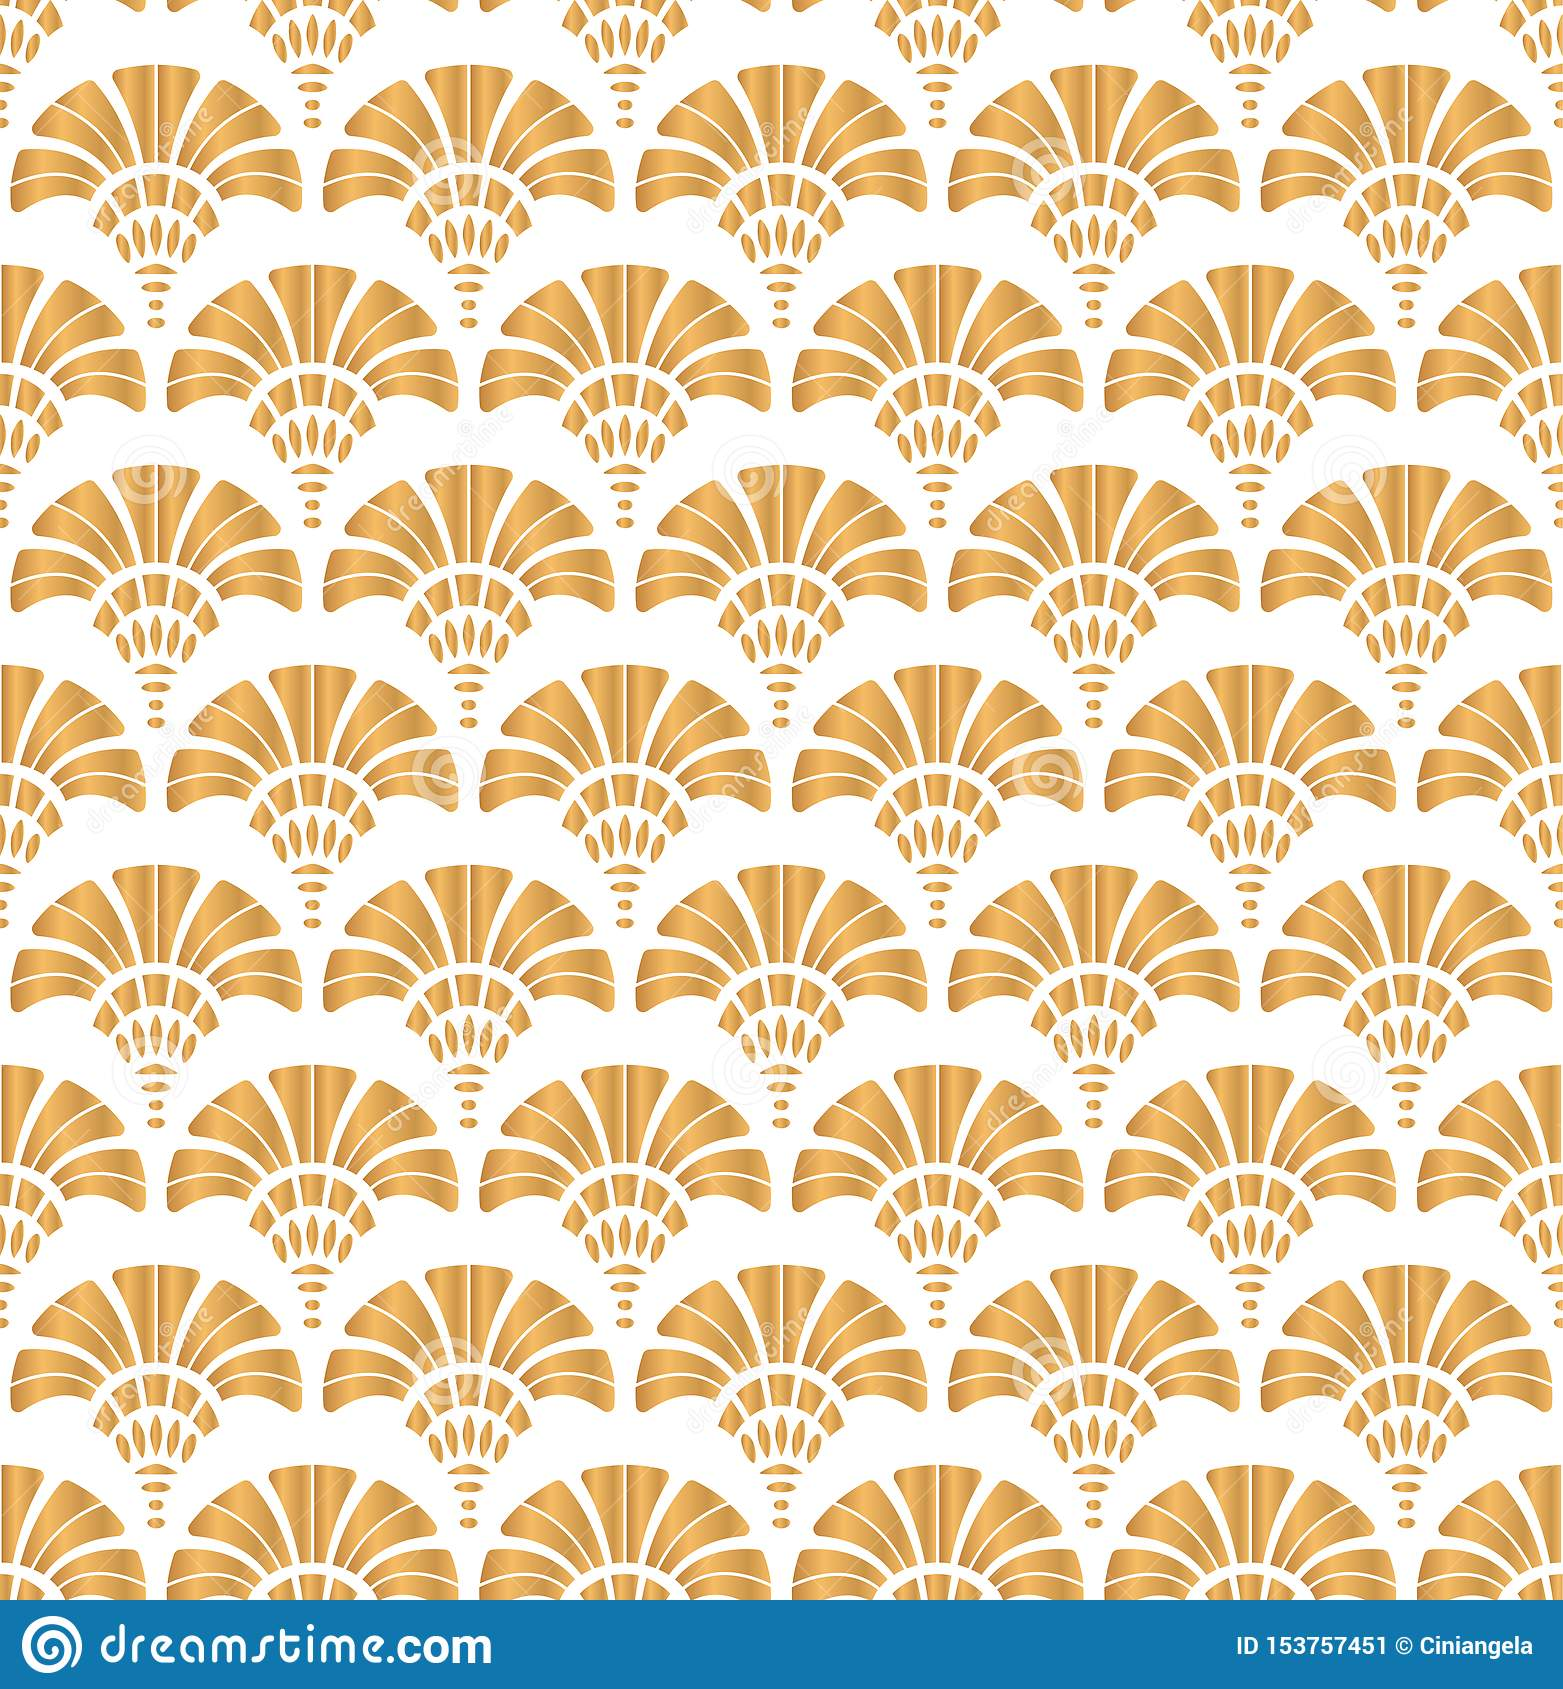 Art Deco Style & Light Light Geometric Gatsby Art Deco Gold Pattern Design On White